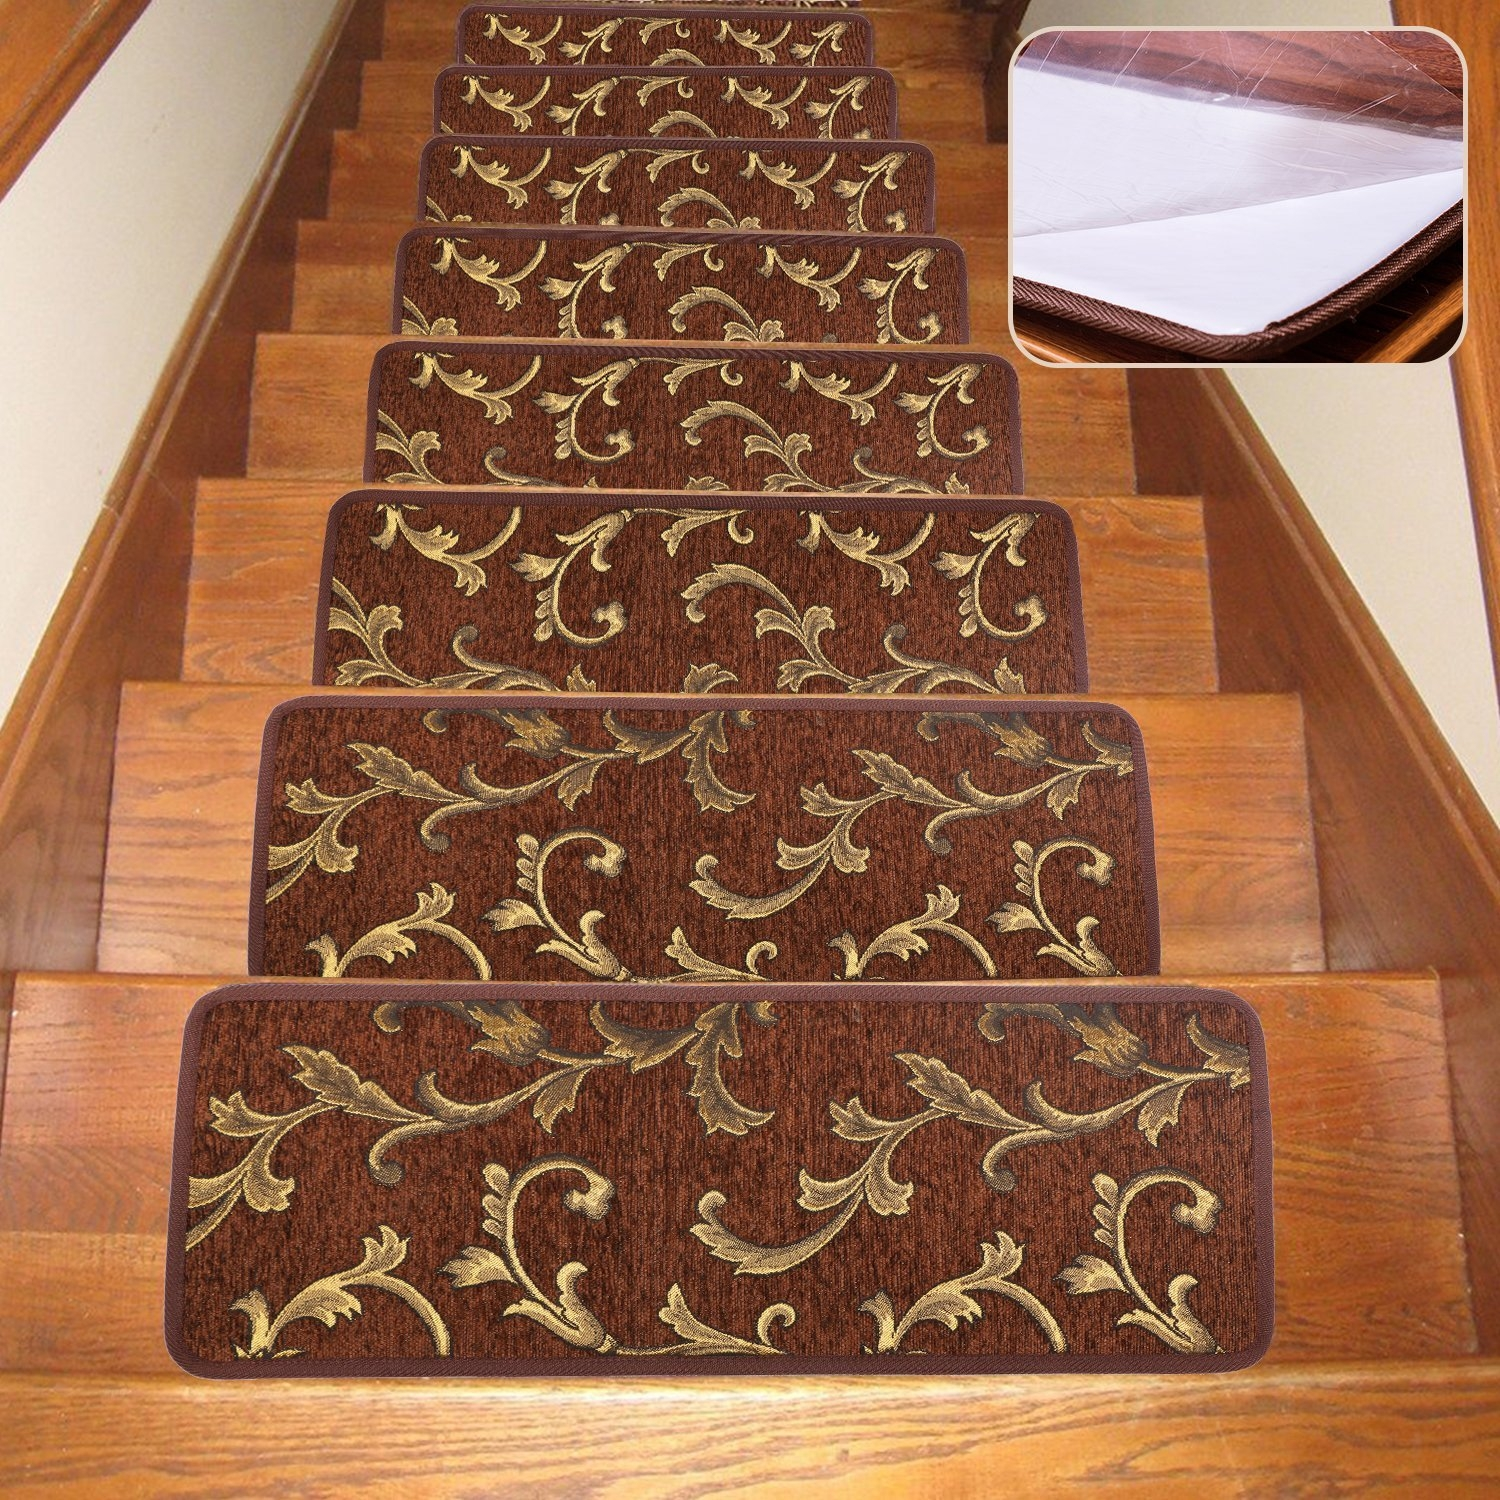 Soloom Non Slip Stair Treads Carpet Indoor Set Of 13 Blended Throughout NonSlip Stair Tread Rugs (#19 of 20)